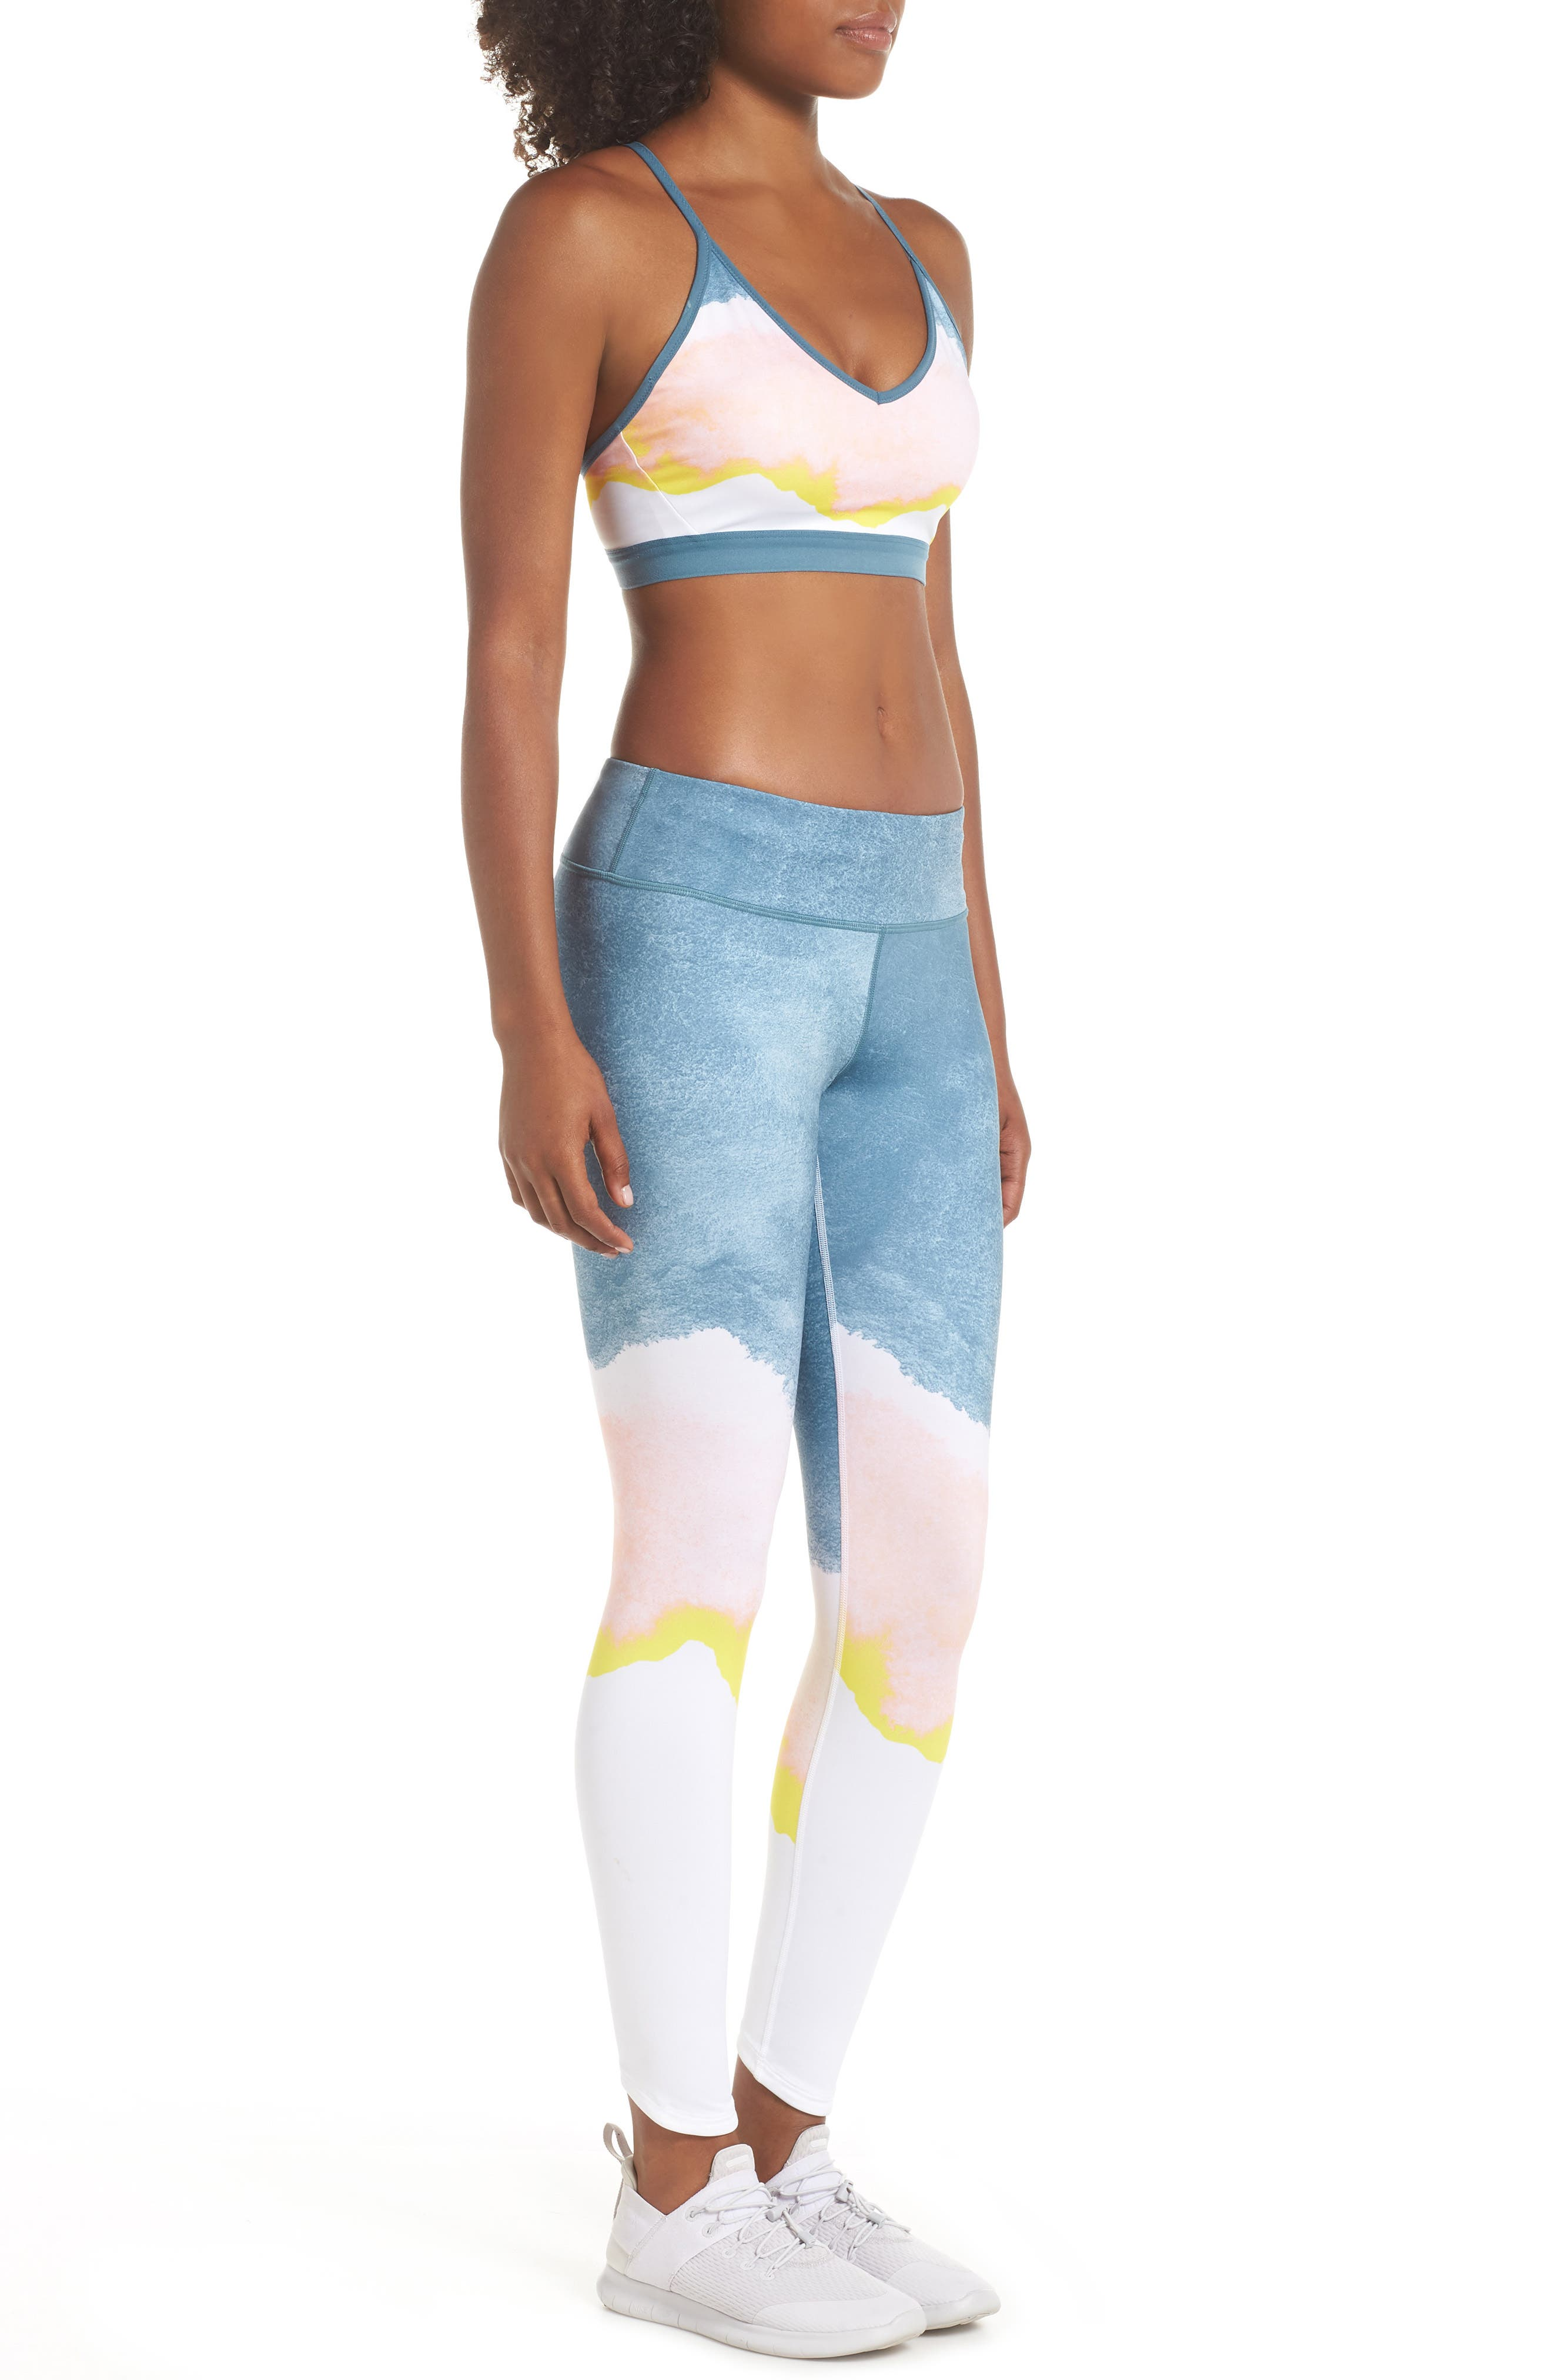 Indy Artist Sports Bra,                             Alternate thumbnail 11, color,                             WHITE/ CELESTIAL TEAL/ WHITE